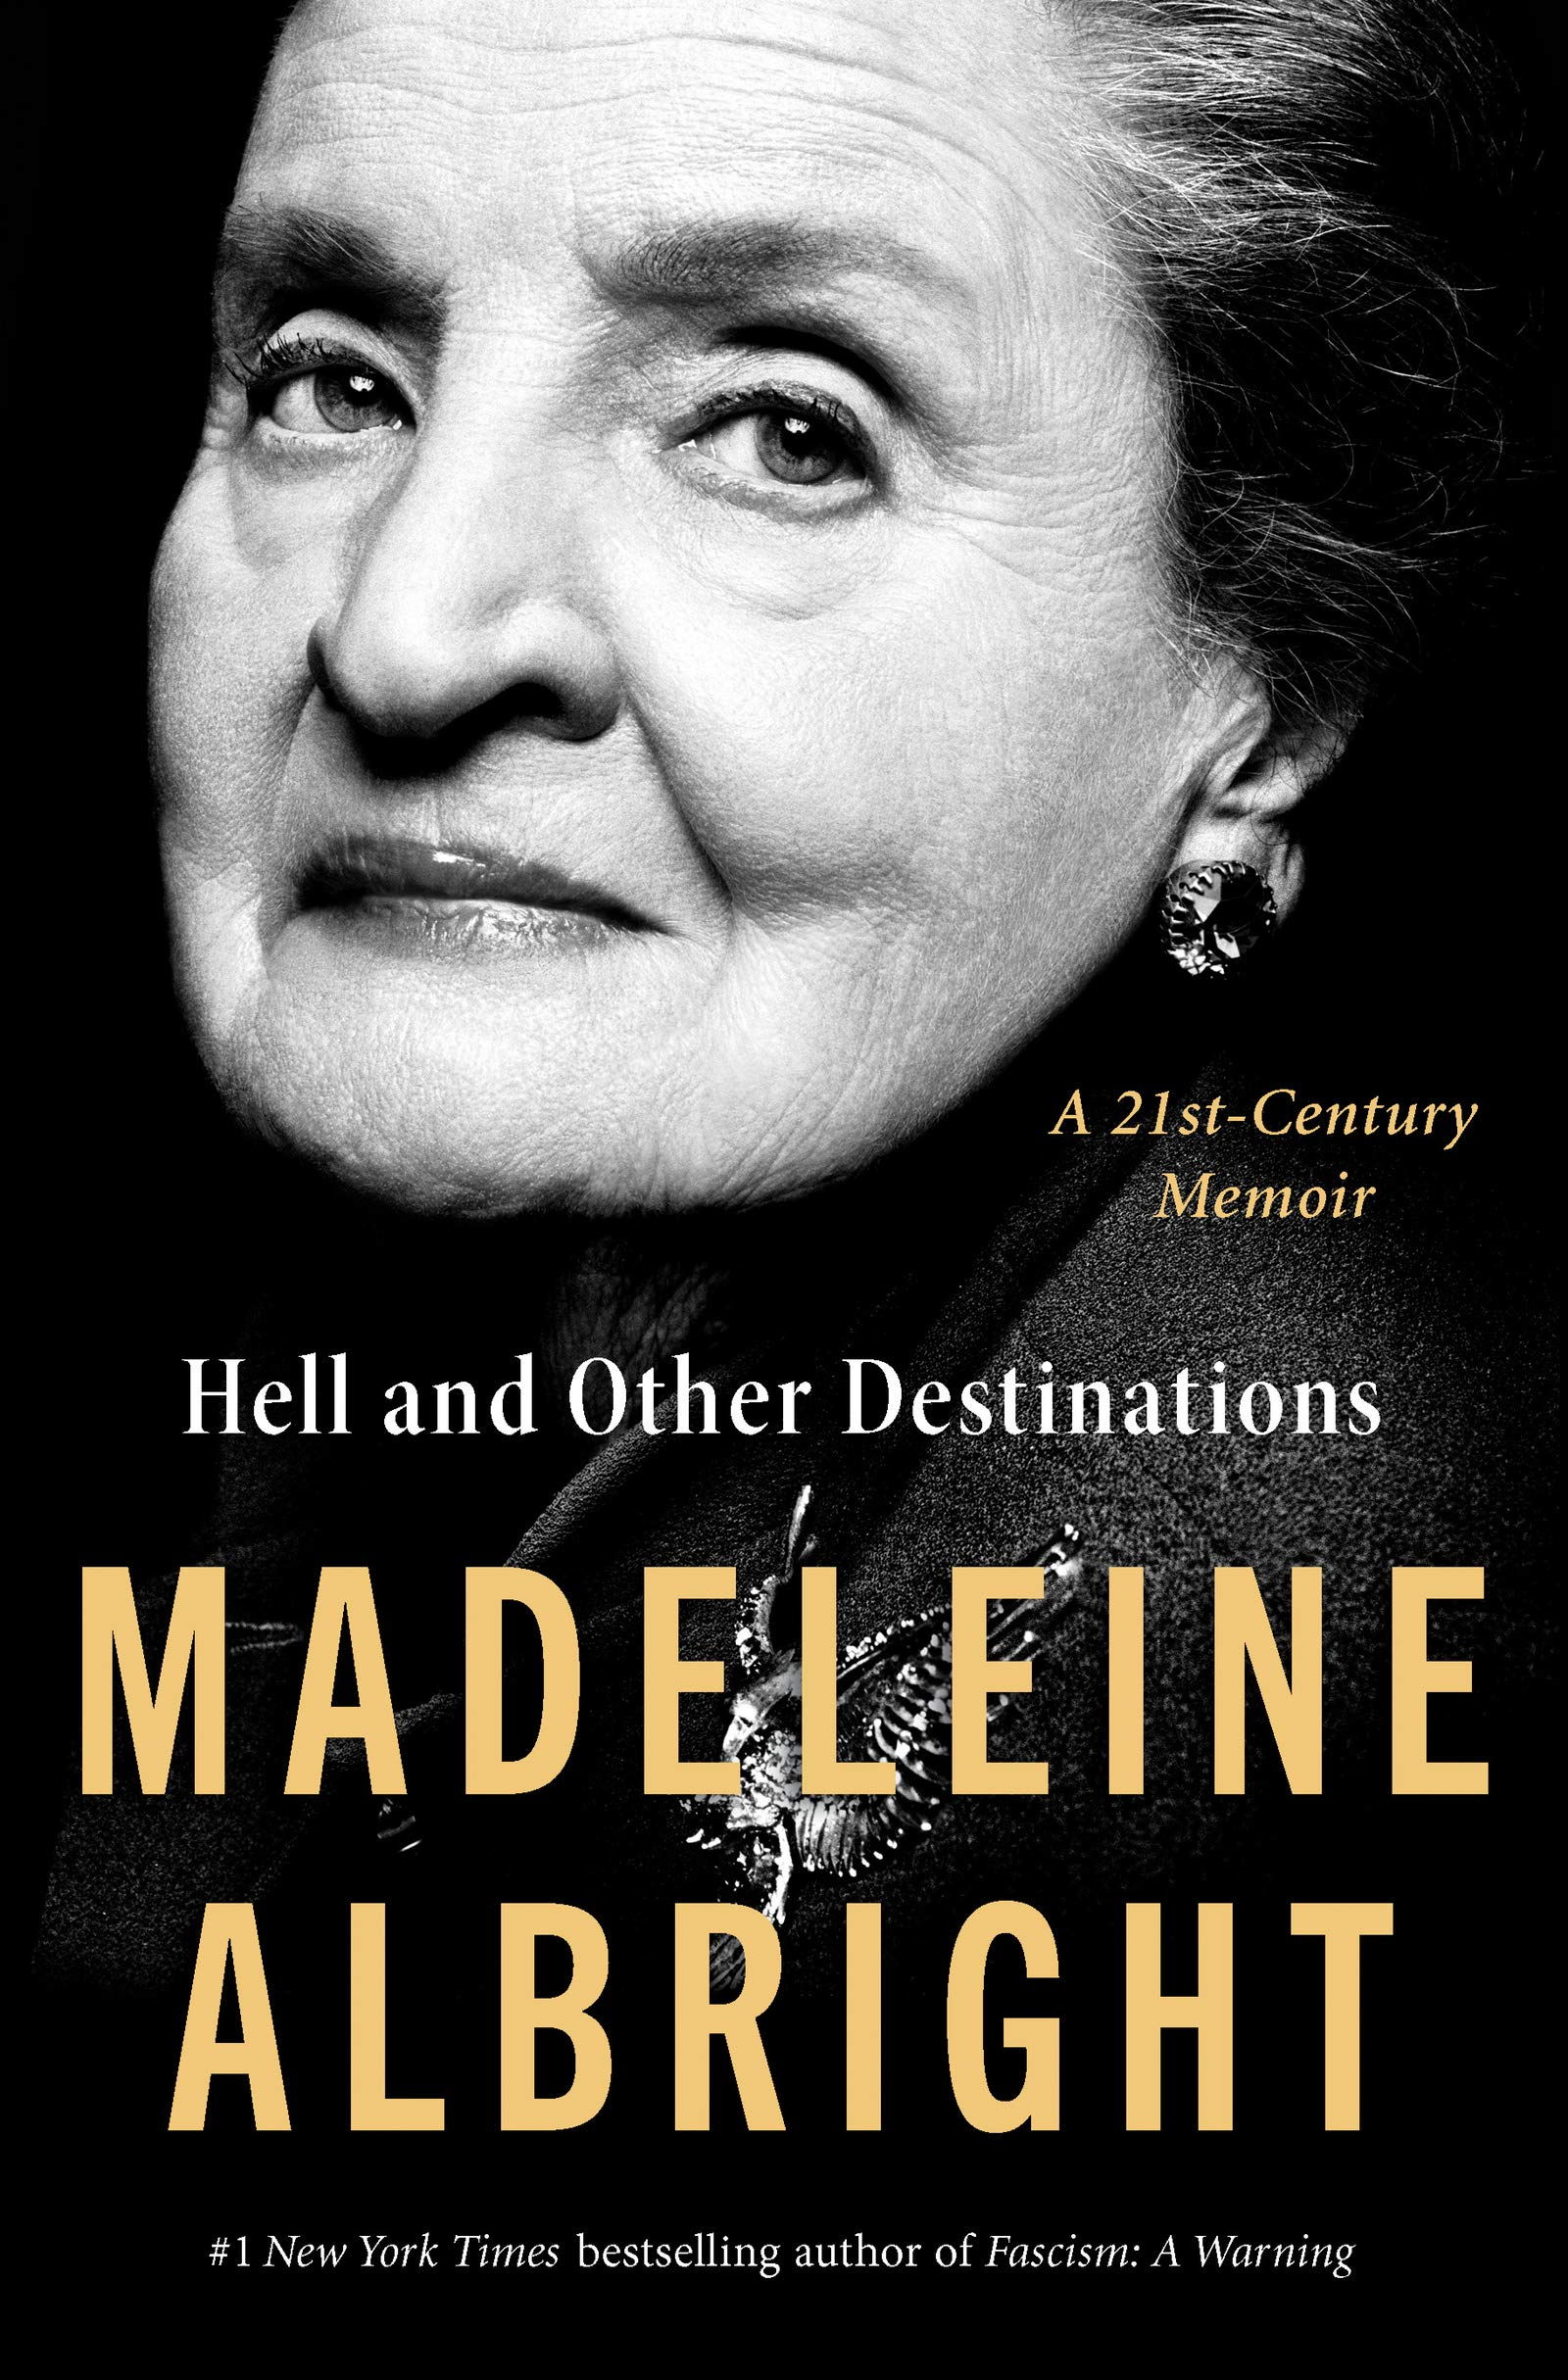 Hell and Other Destinations by Madeleine Albright